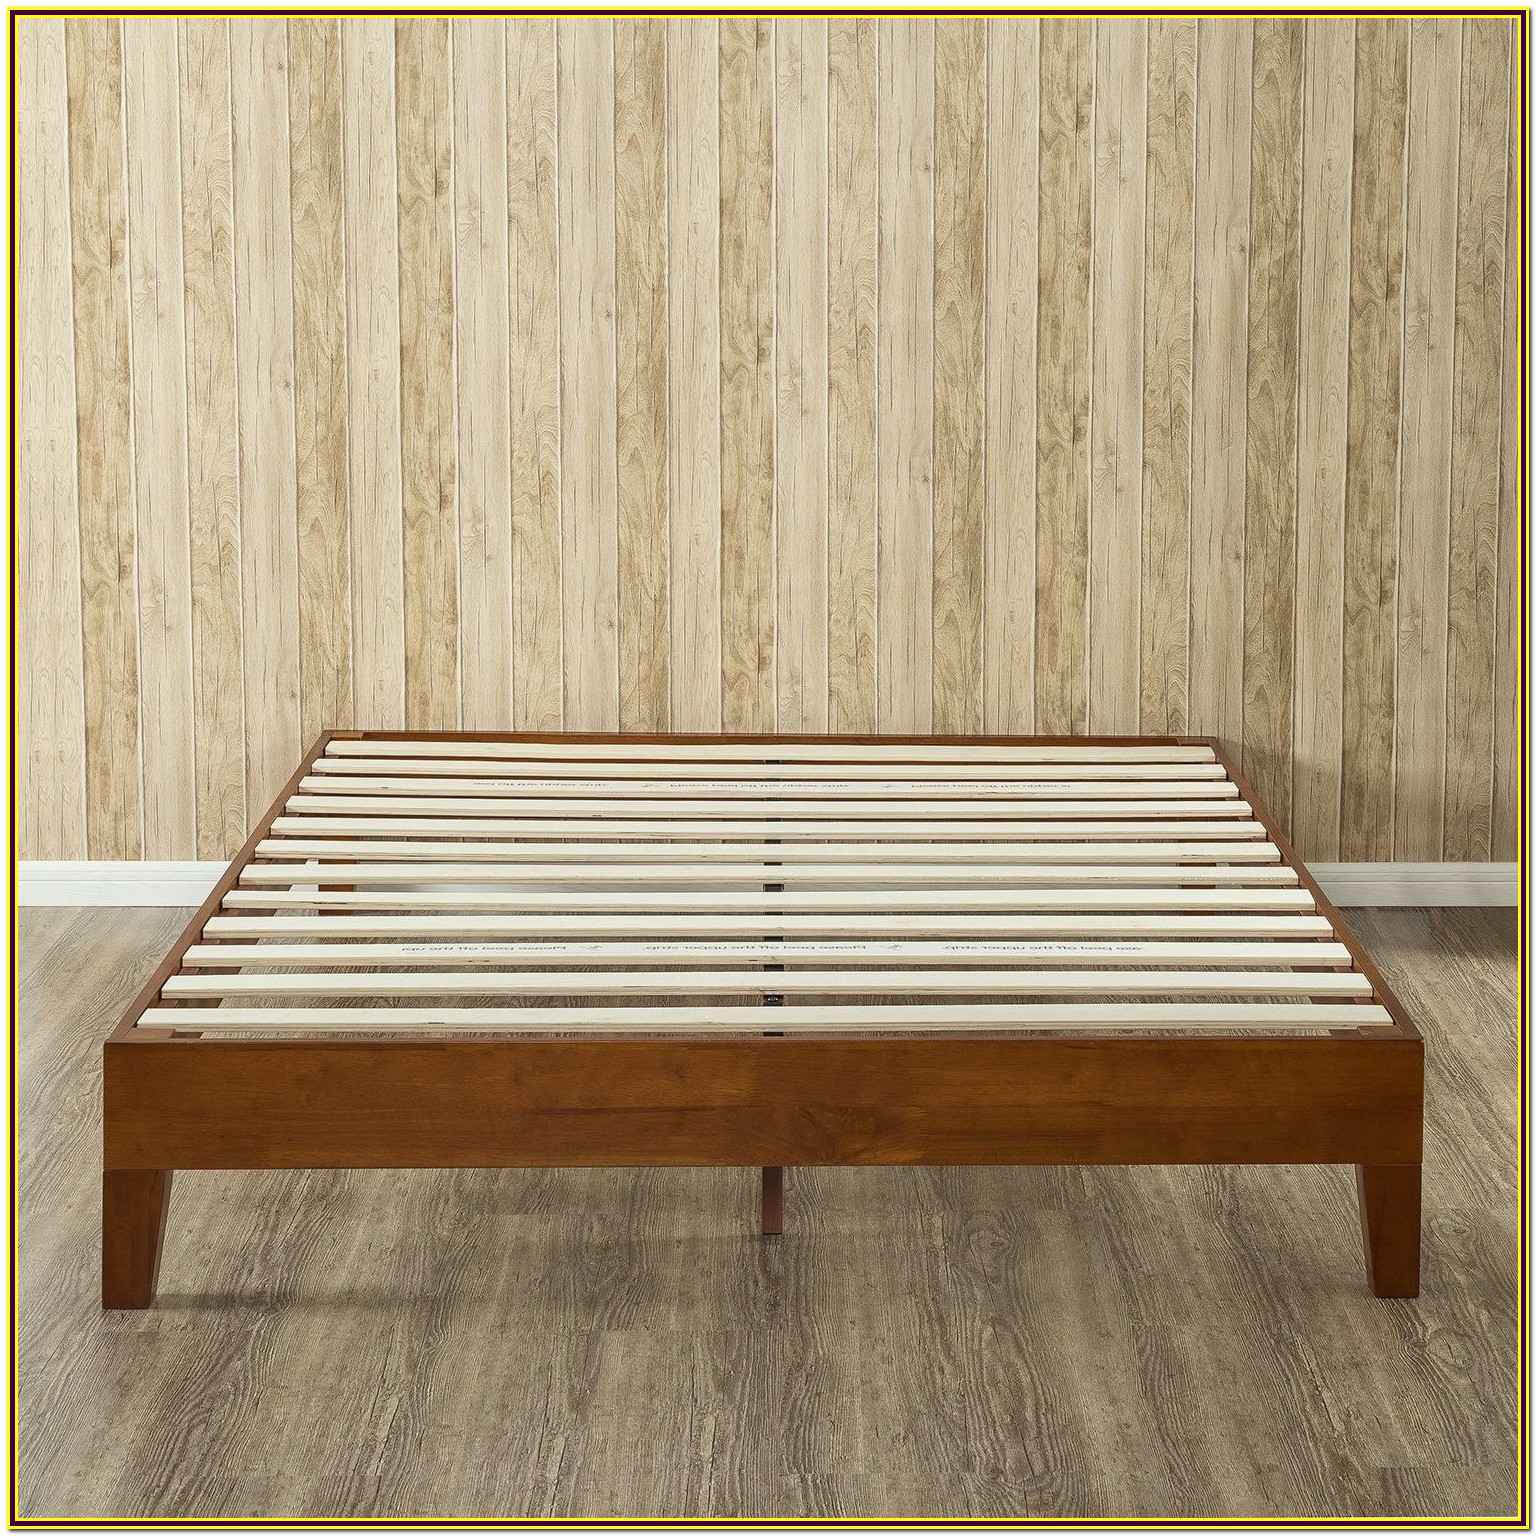 Queen Size Wood Platform Bed Frame